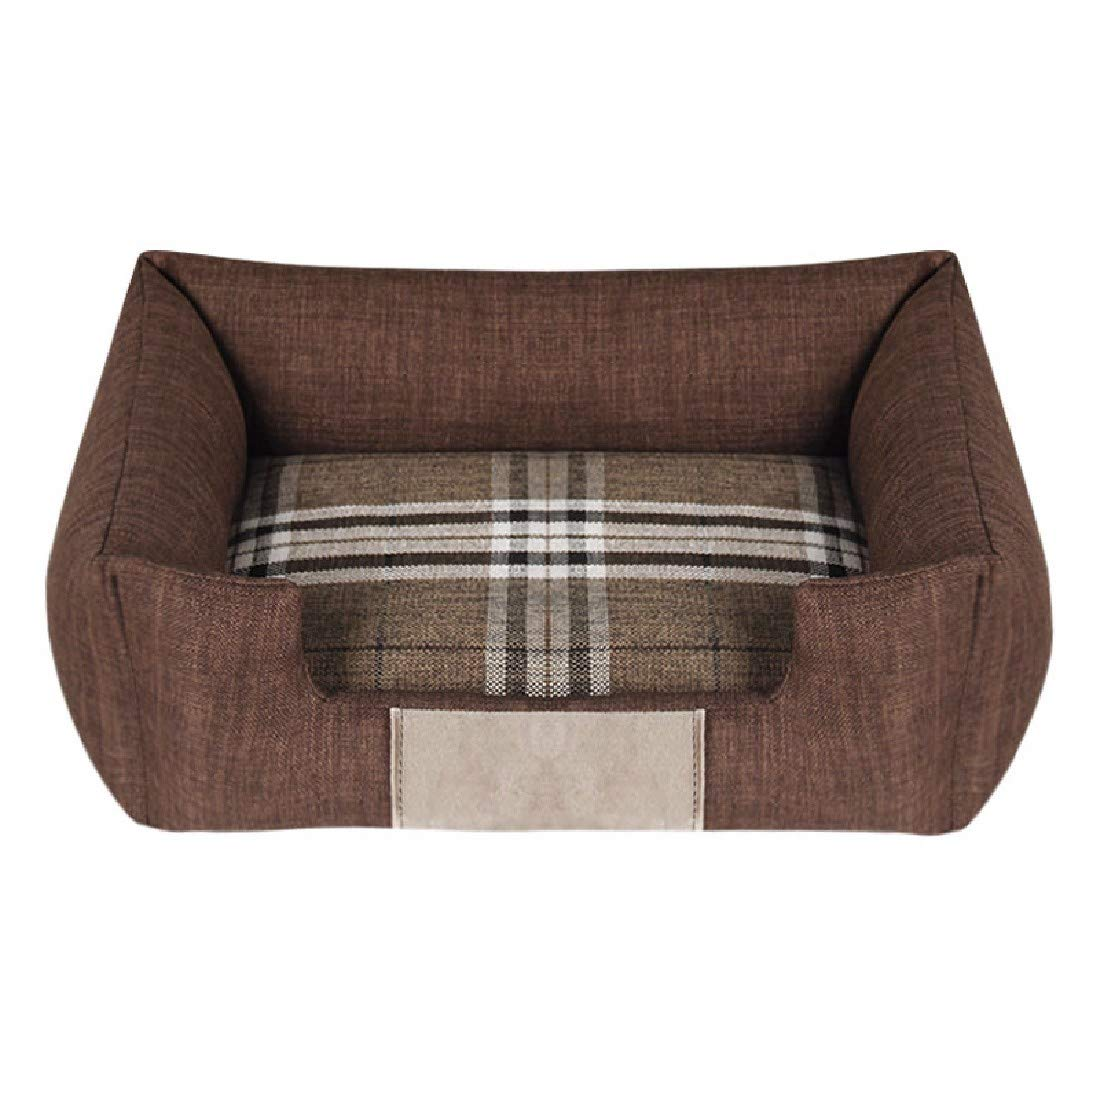 Coffee 72x52 Coffee 72x52 Pet Dog Cat House Bed Four Seasons Kennel Washable bite cat and Dog Pets nest,Coffee,72x52